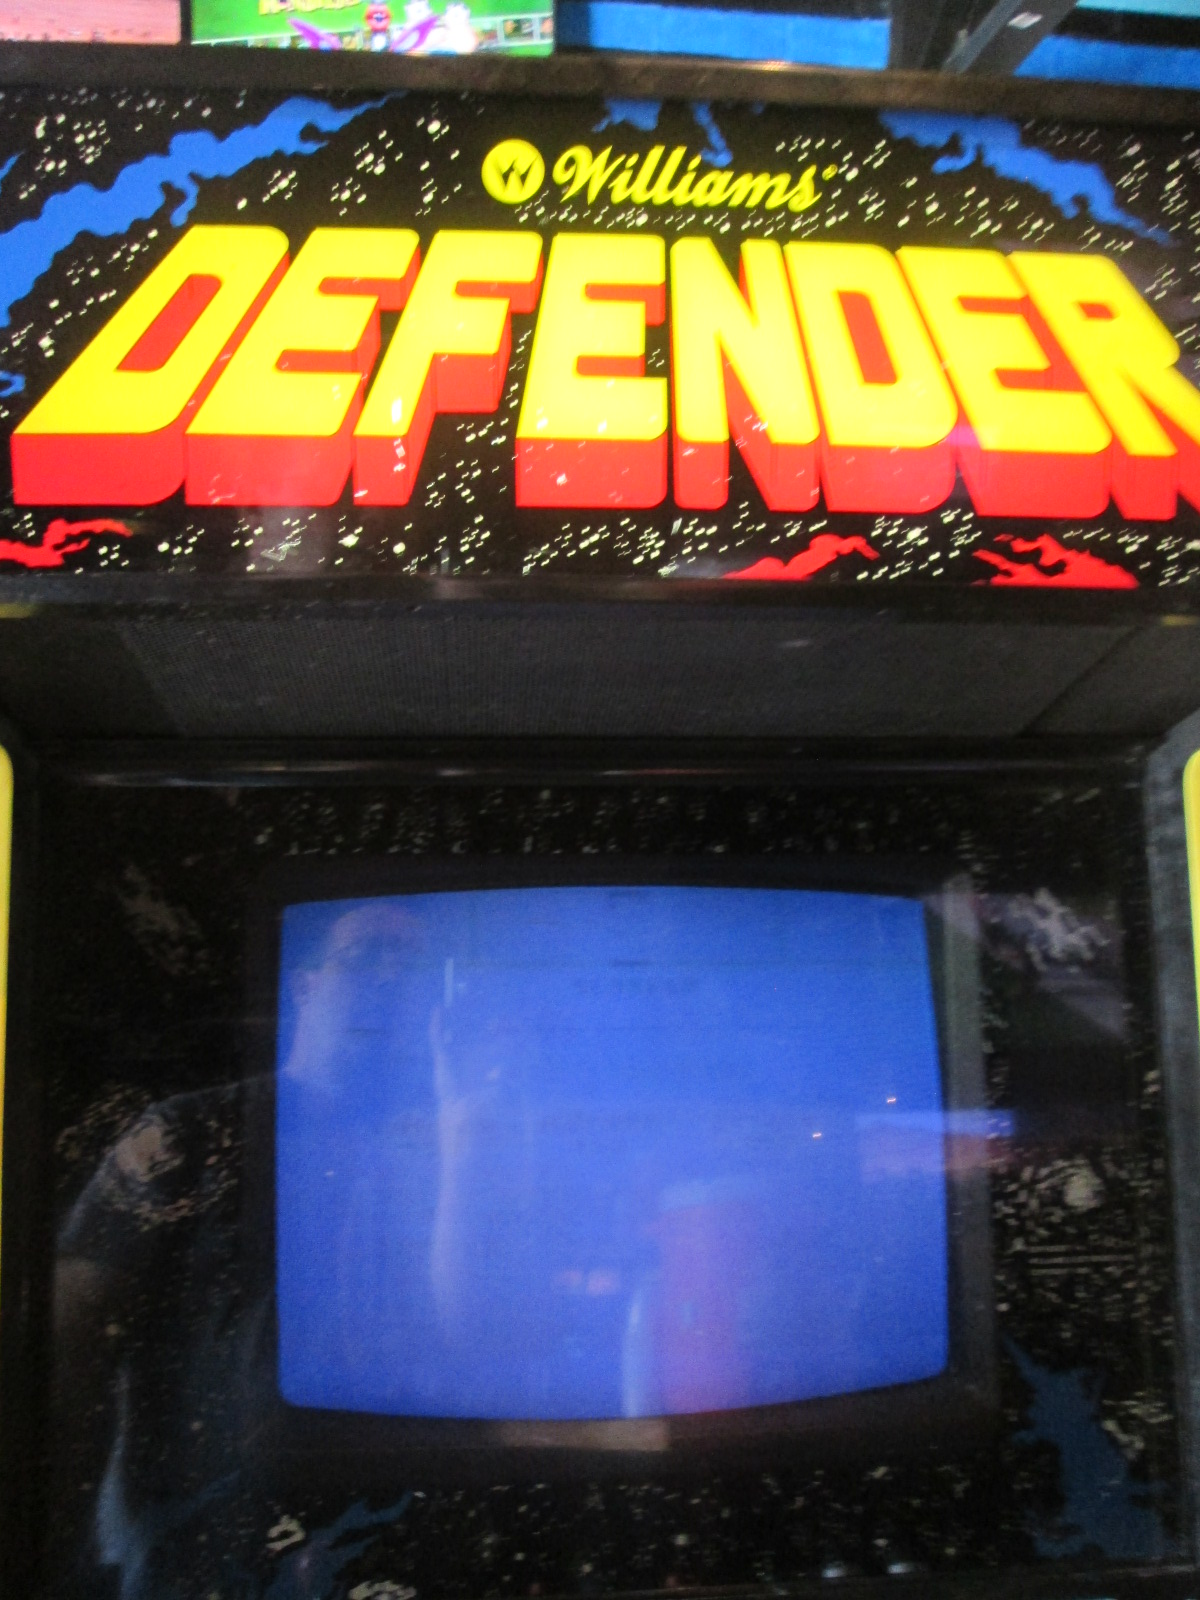 ed1475: Defender (Arcade) 5,725 points on 2016-08-28 16:11:05